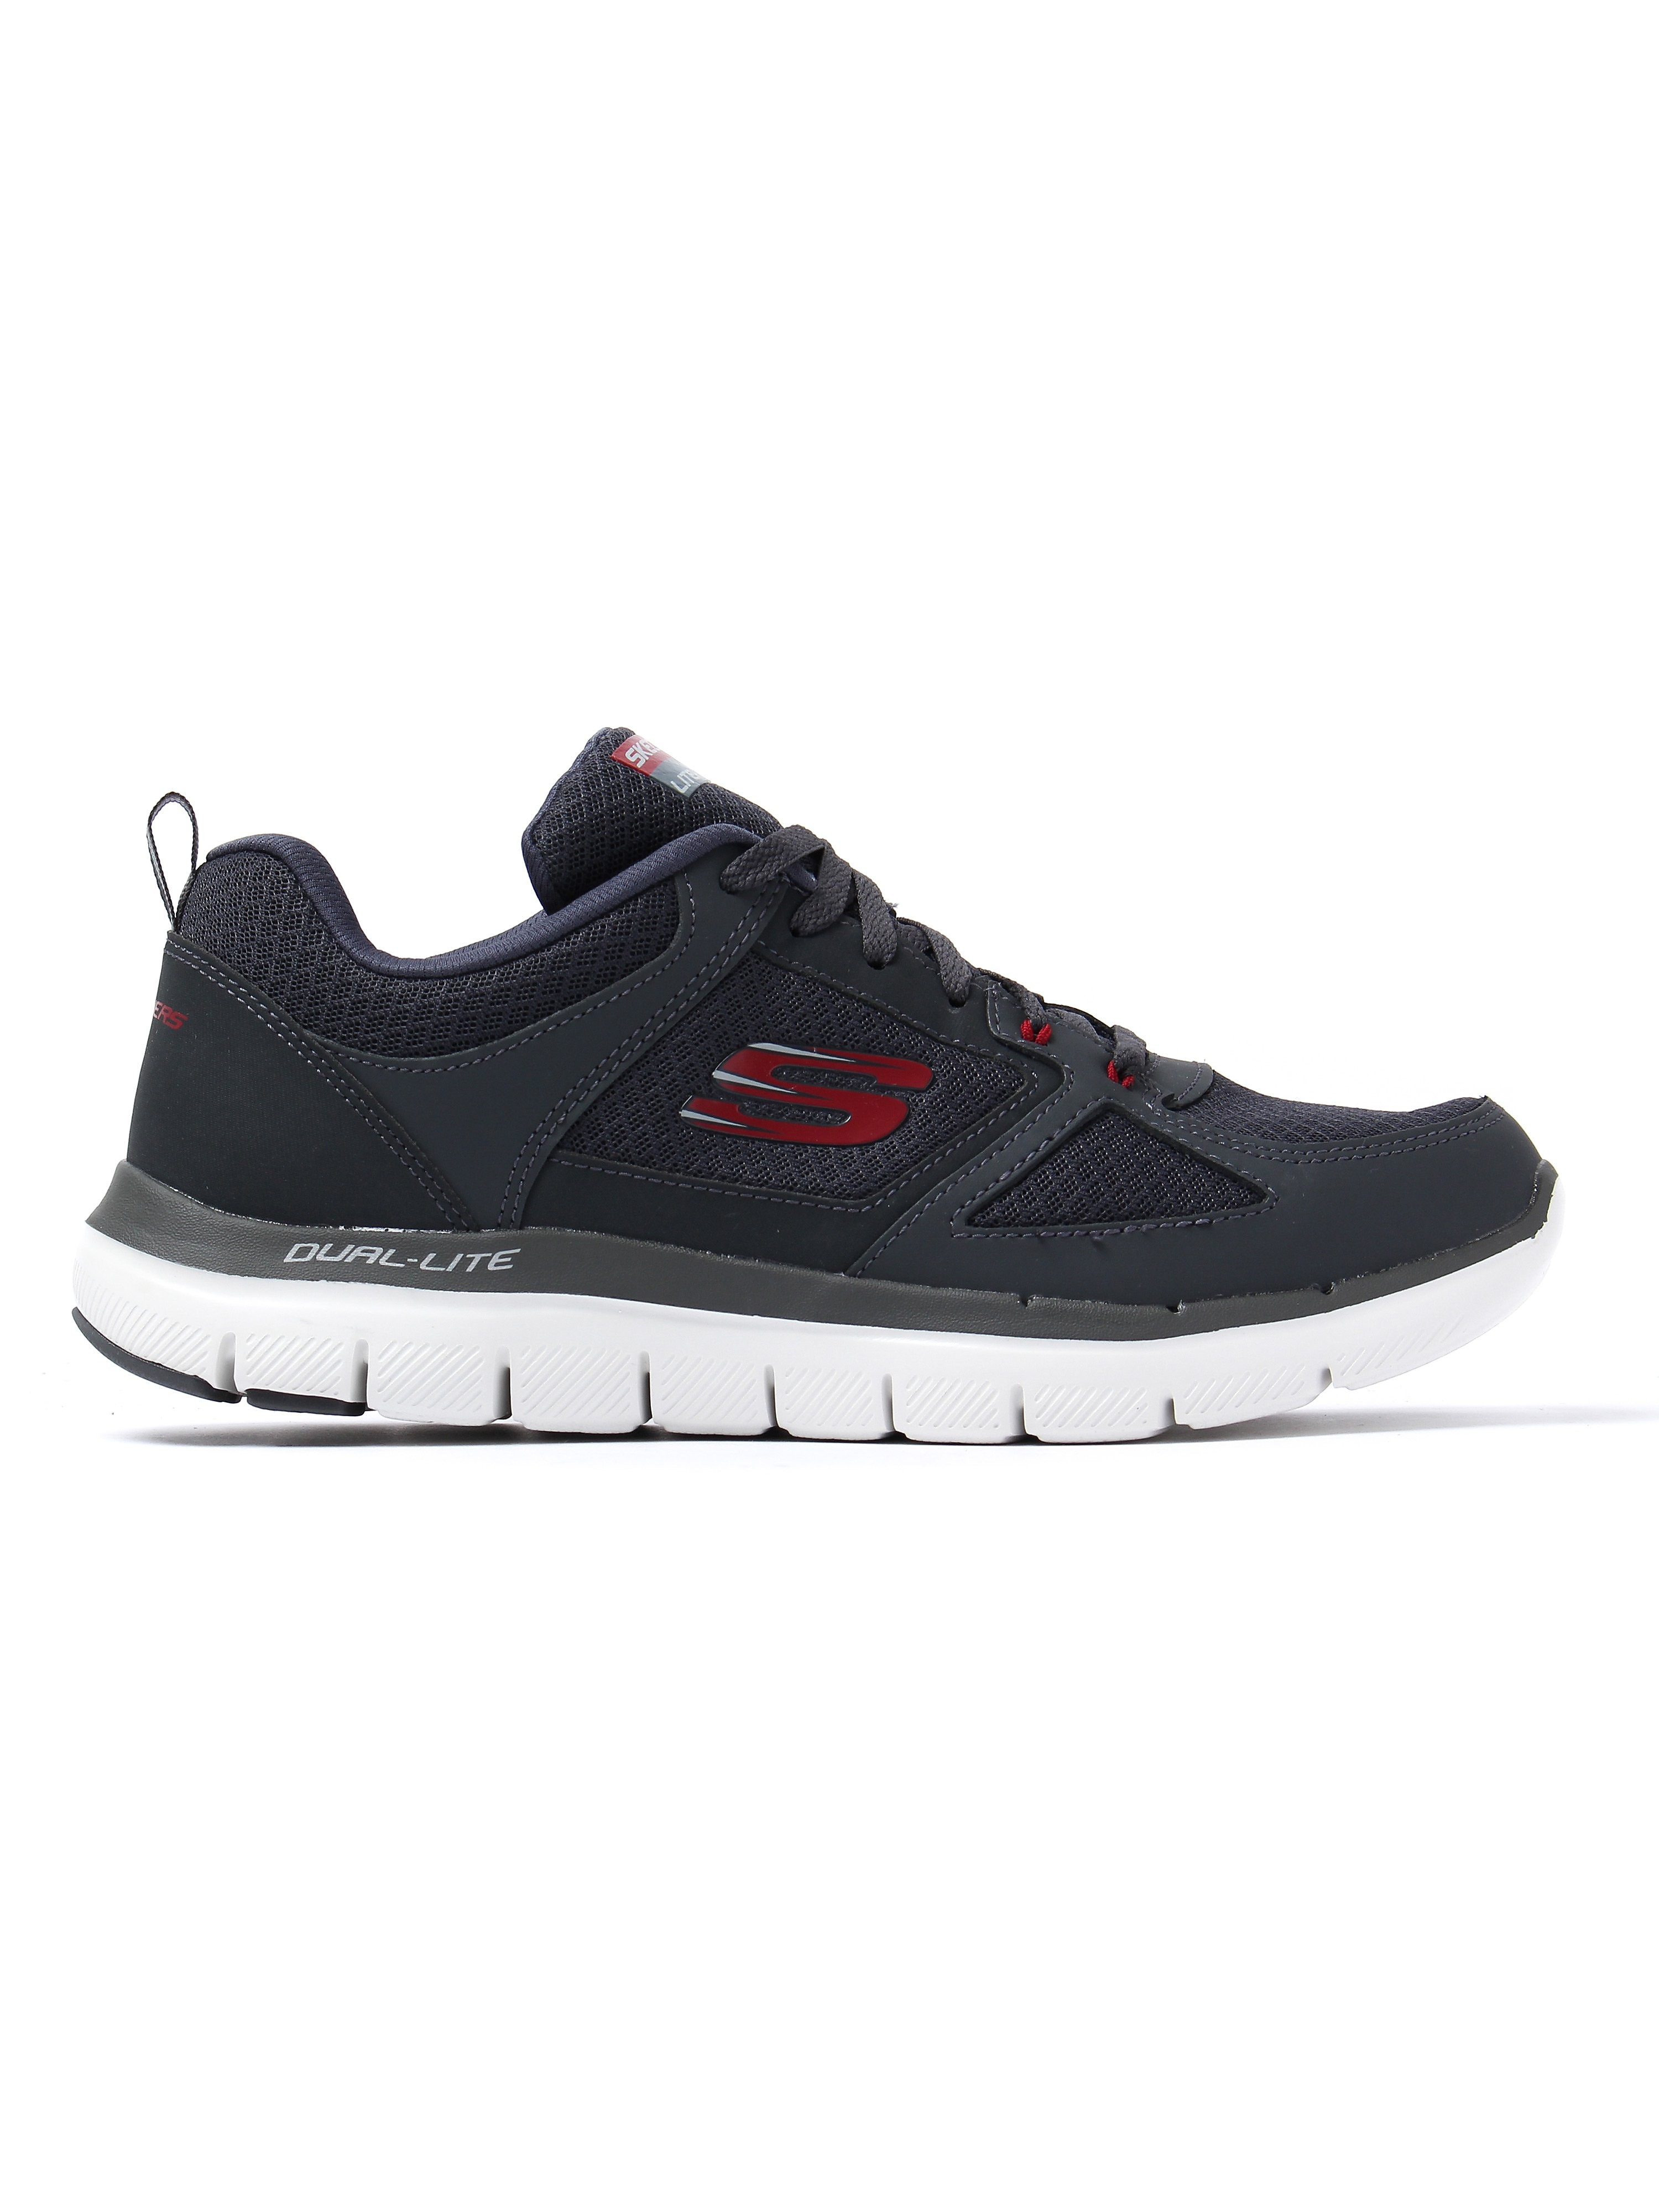 Skechers Men's Flex Advantage 2.0 Lindman Trainers - Charcoal